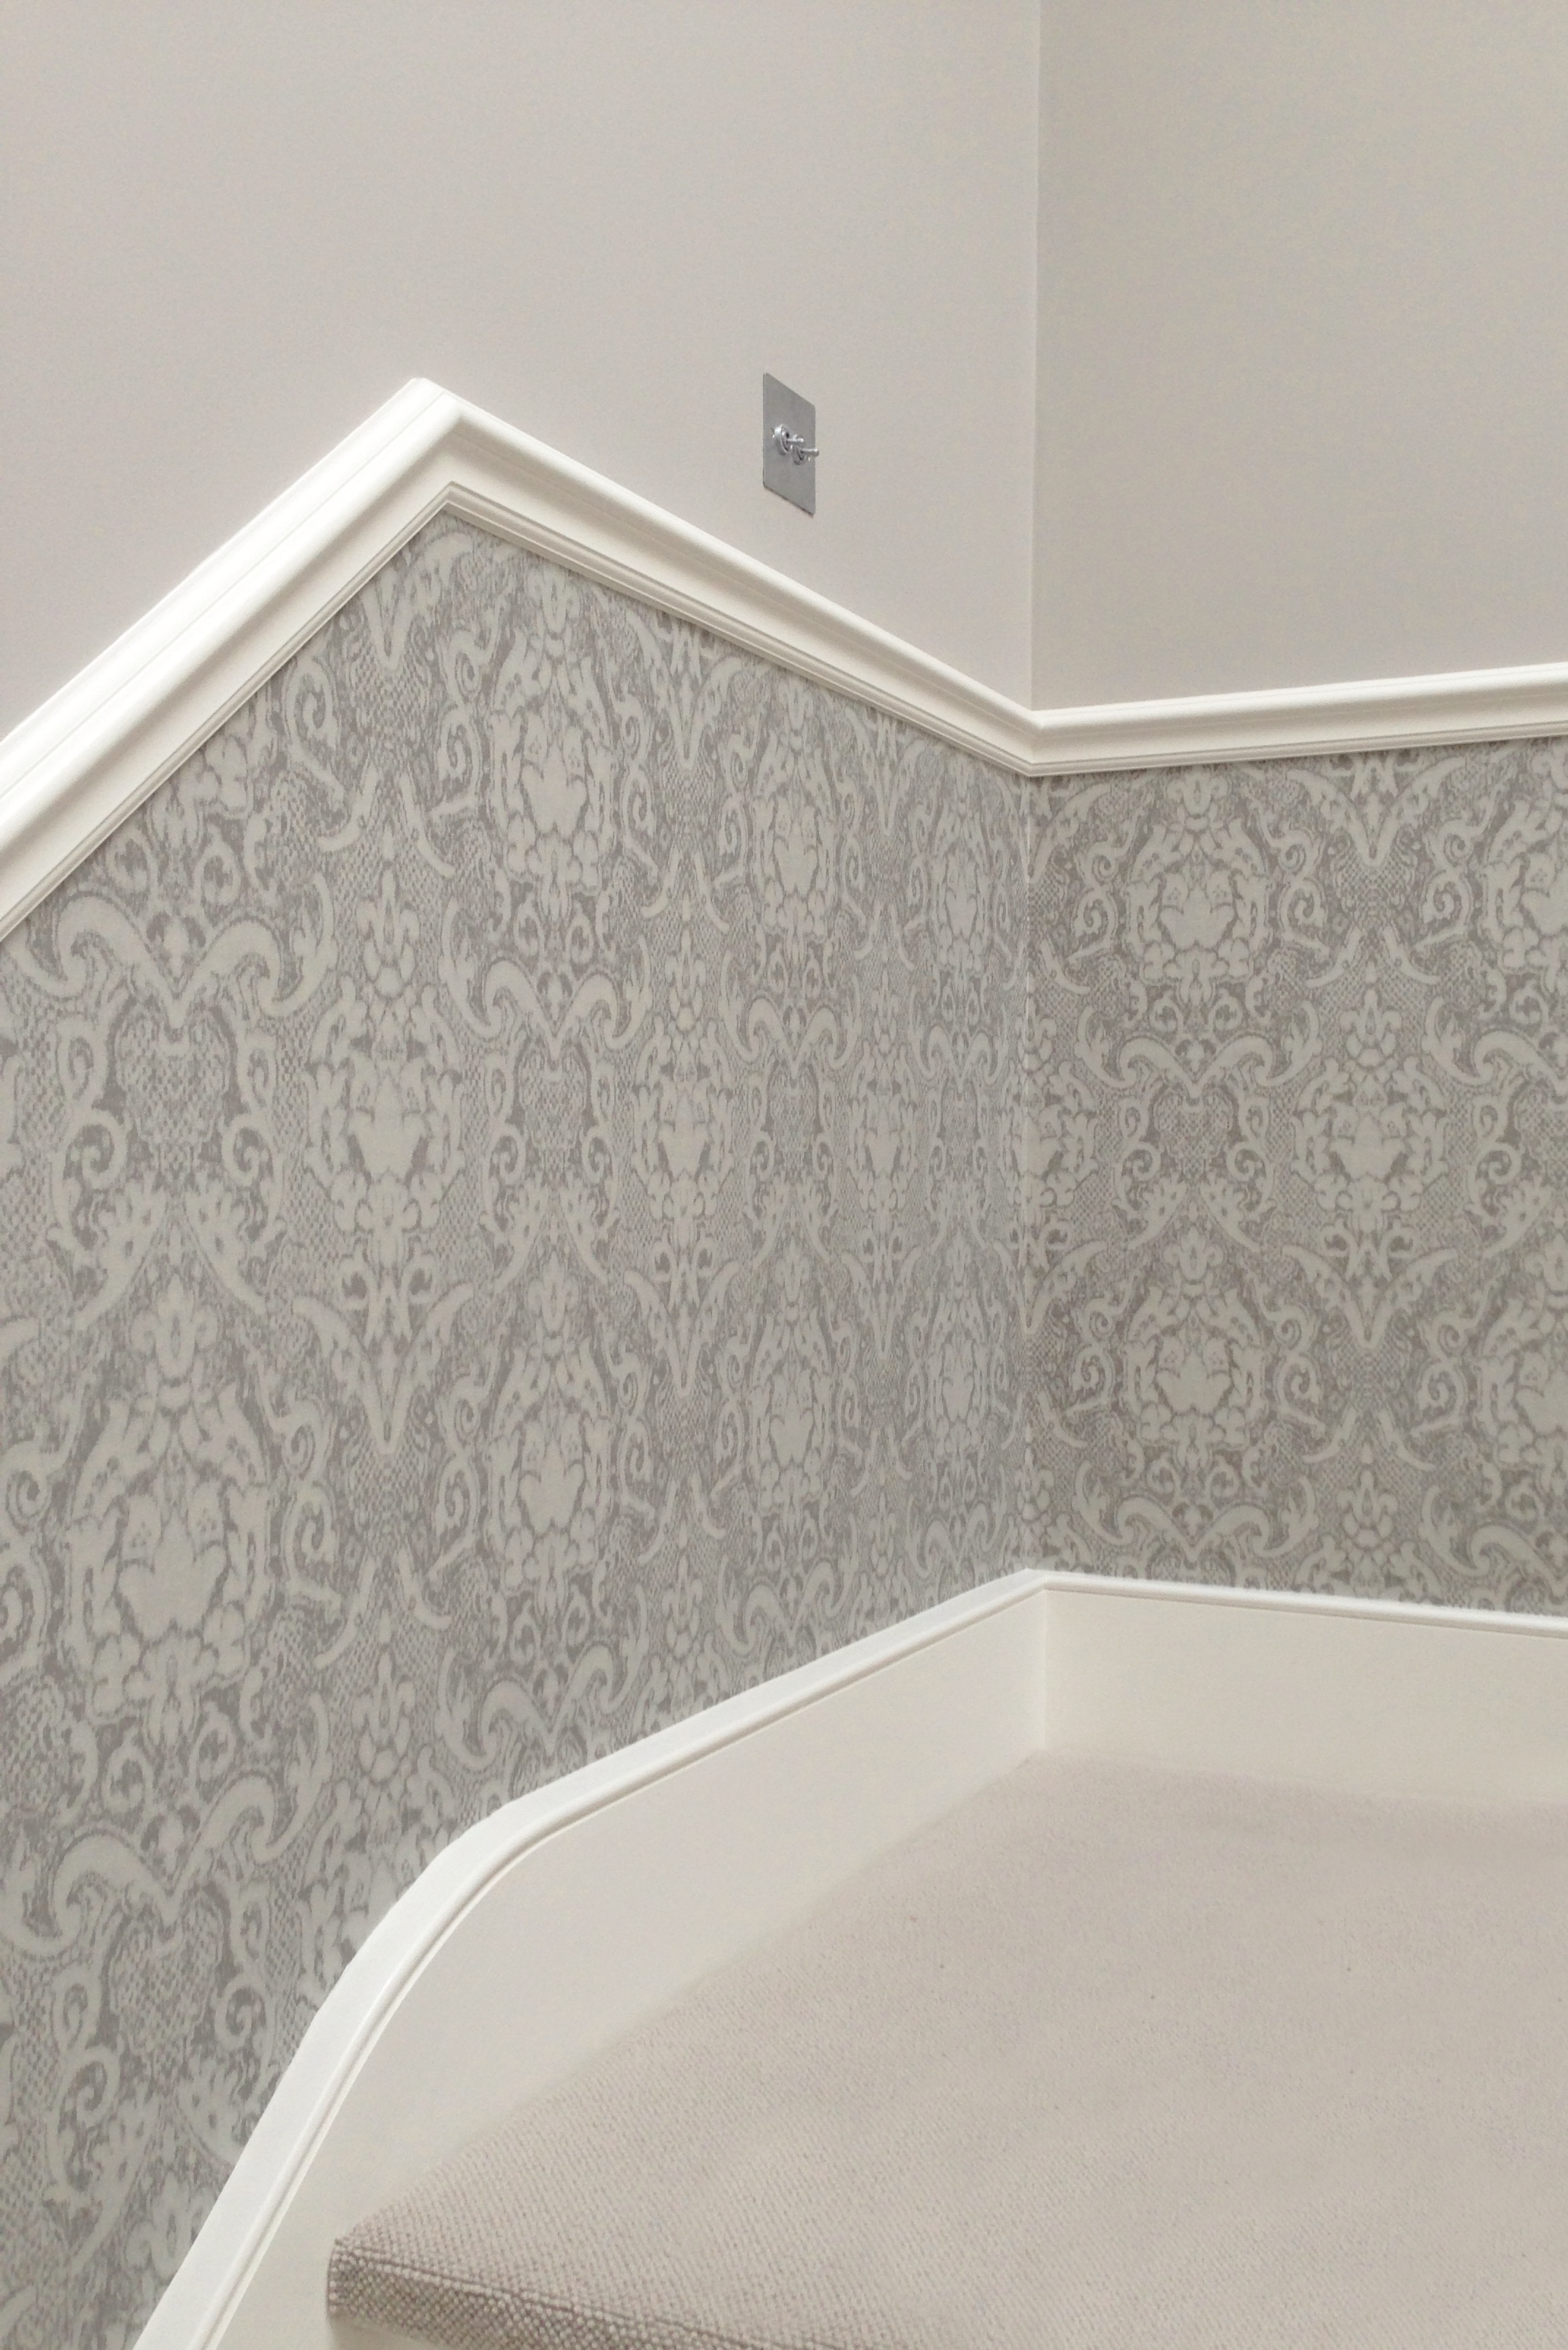 wallpapering of room wallpapering of room wallpapering of room ...